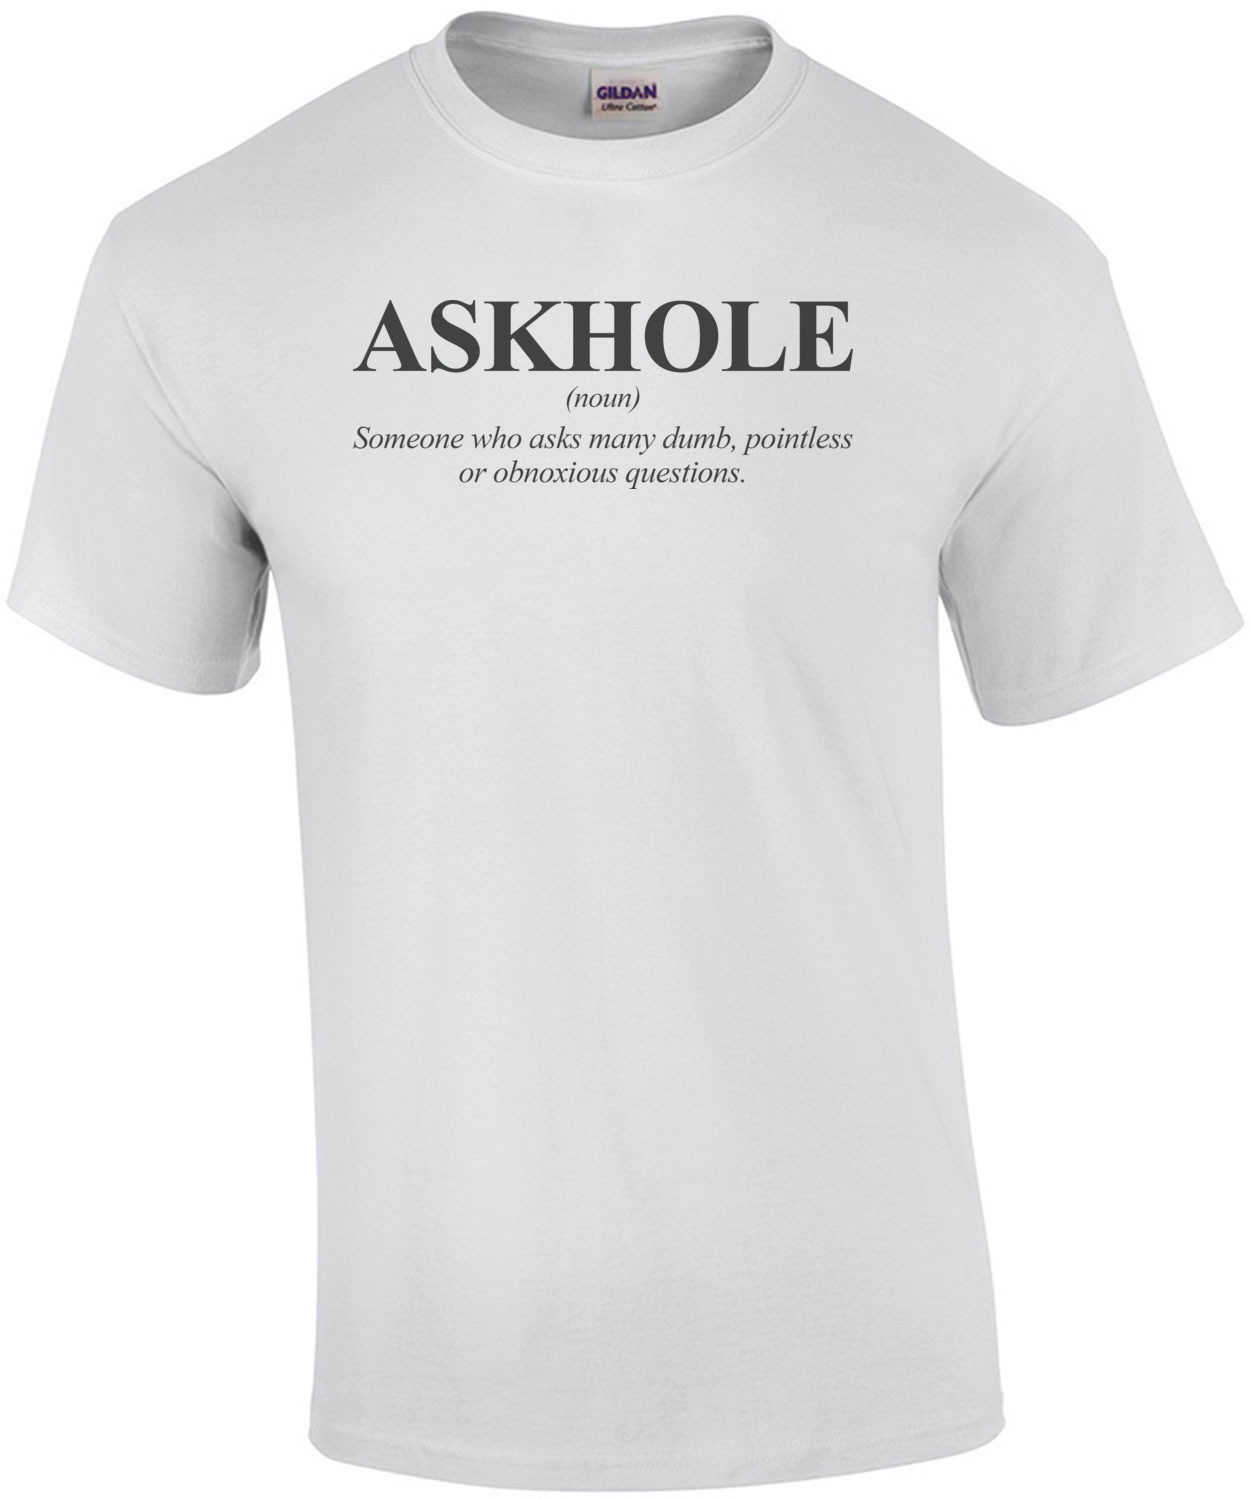 Askhole Definition Shirt shirt